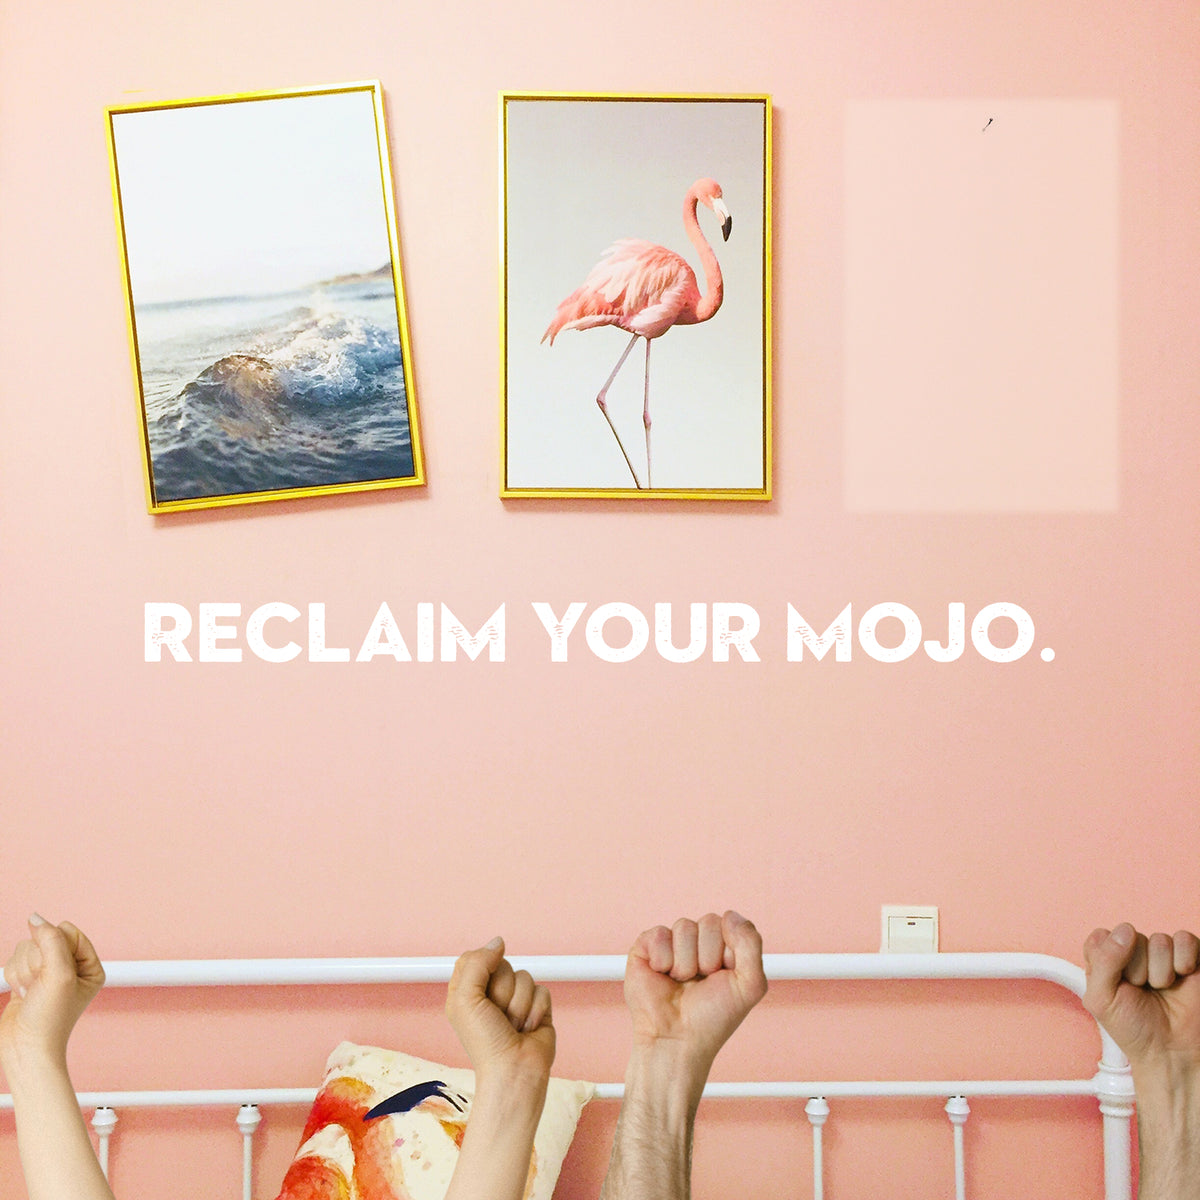 Mojo enhancement image with pictures on wall